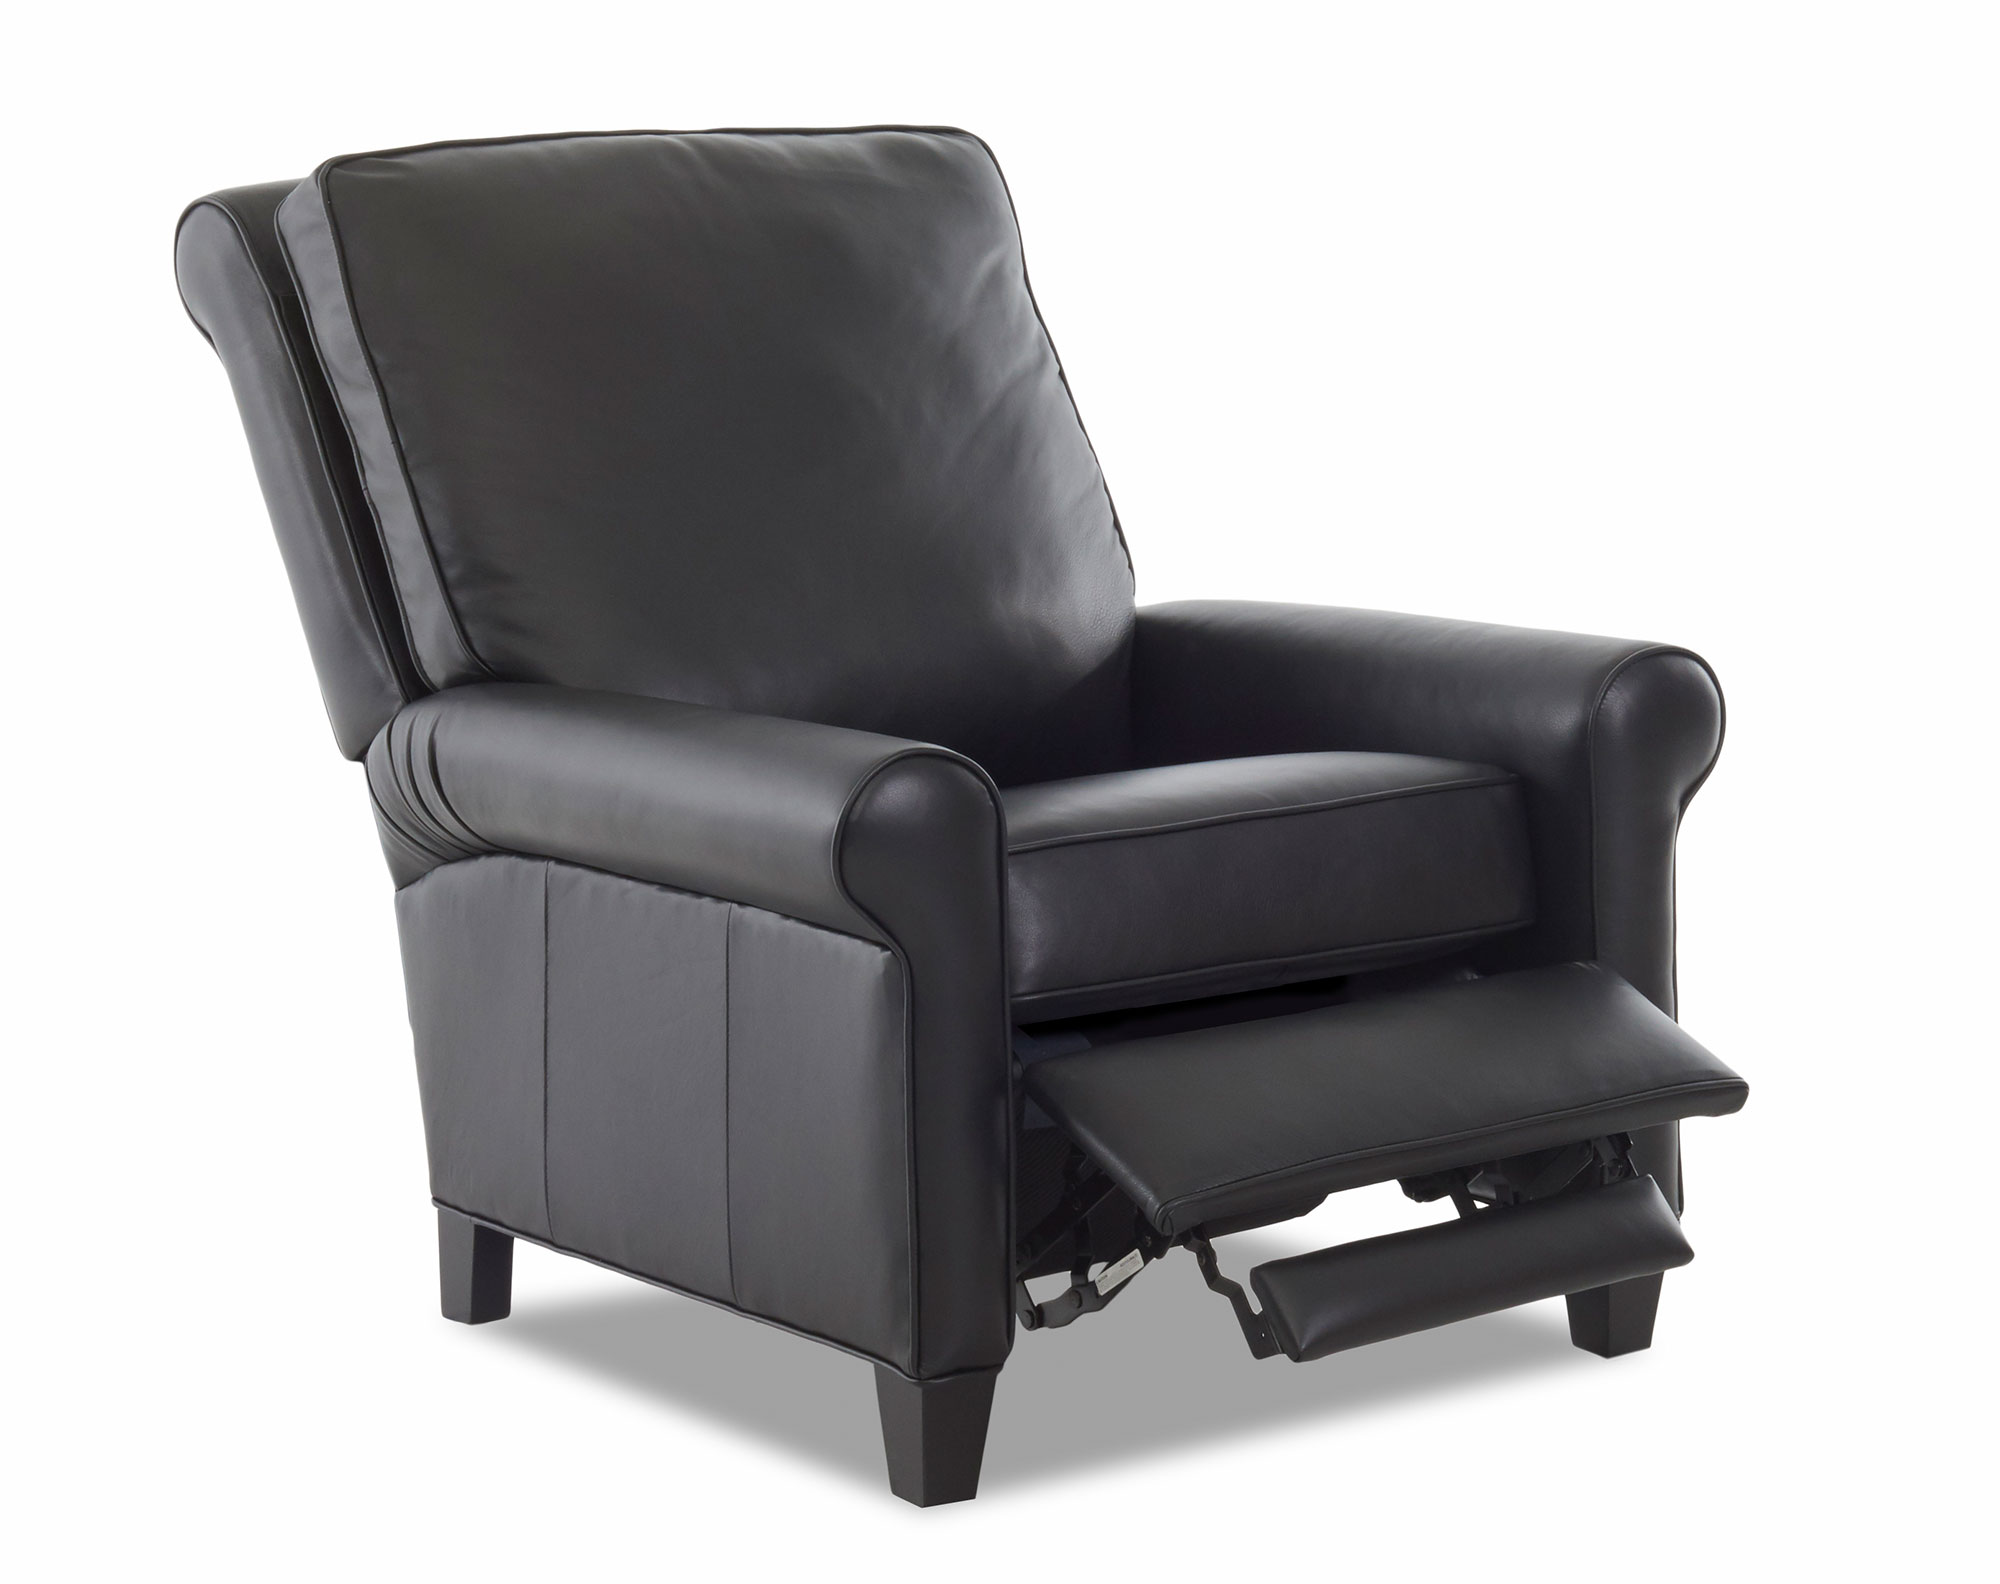 Fabulous El Grande High Leg Leather Reclining Chair Sofas And Alphanode Cool Chair Designs And Ideas Alphanodeonline